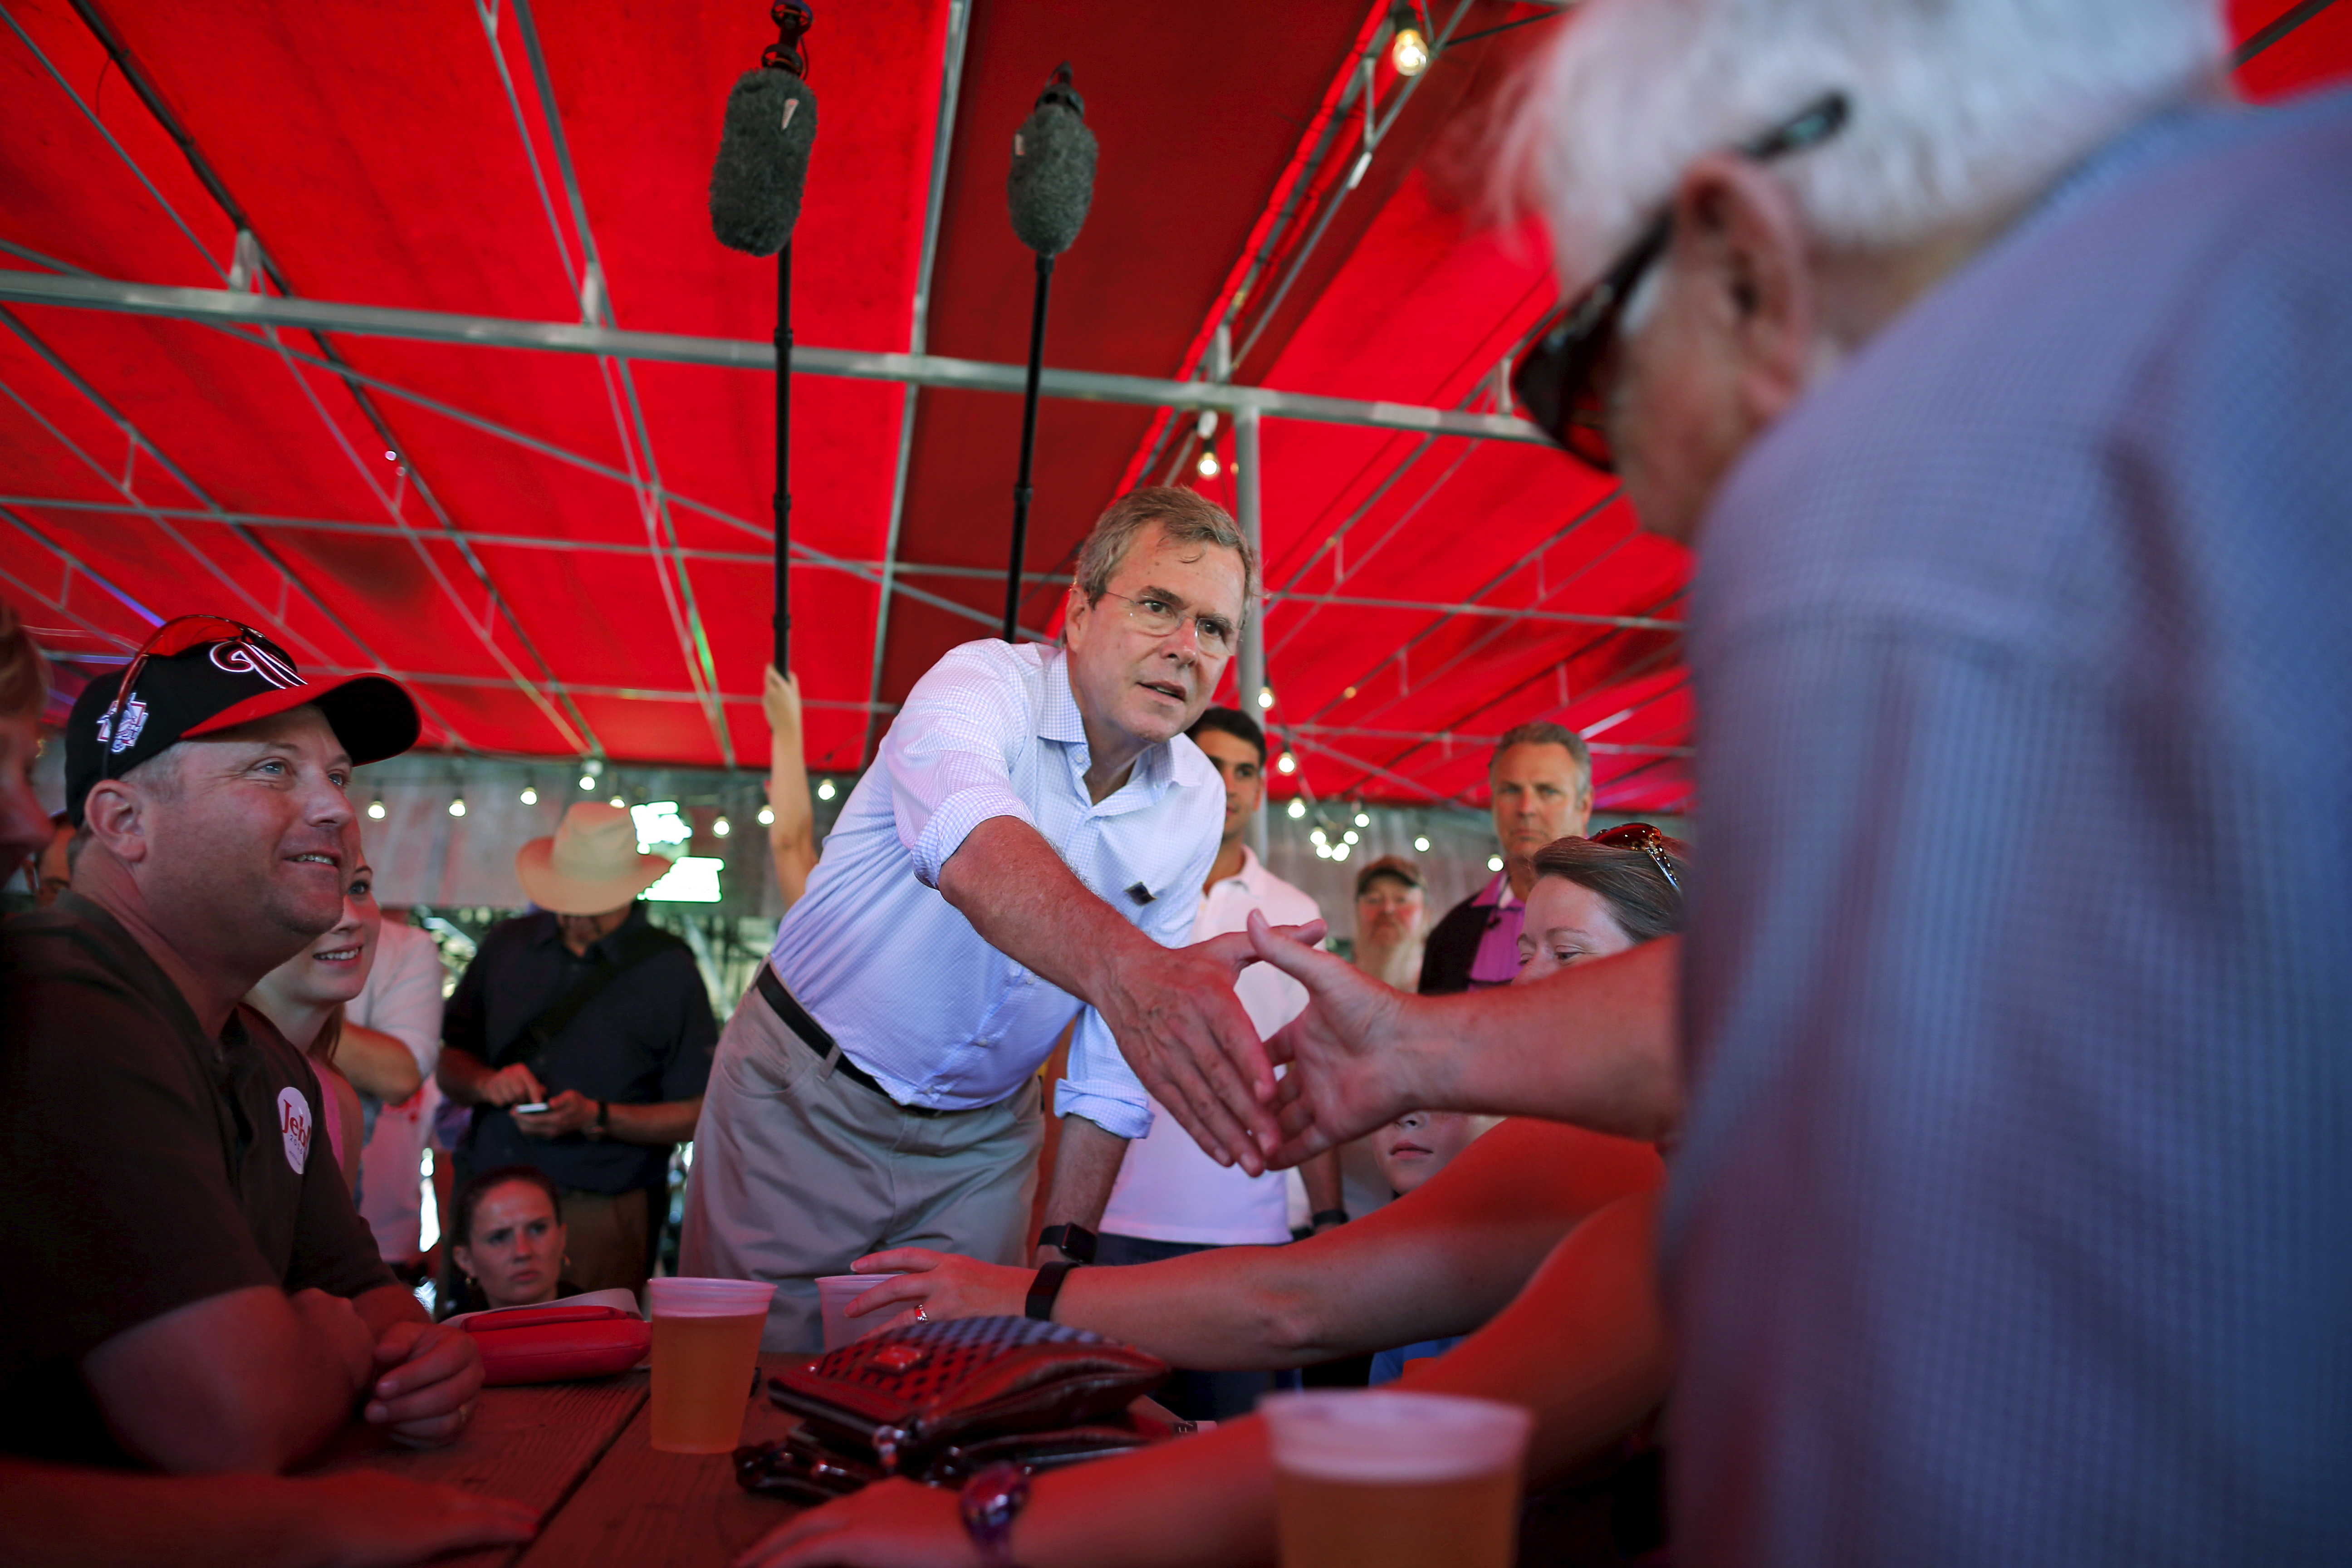 Jeb Bush greets attendees at the Iowa State Fair in Des Moines, Iowa on Aug. 14, 2015.